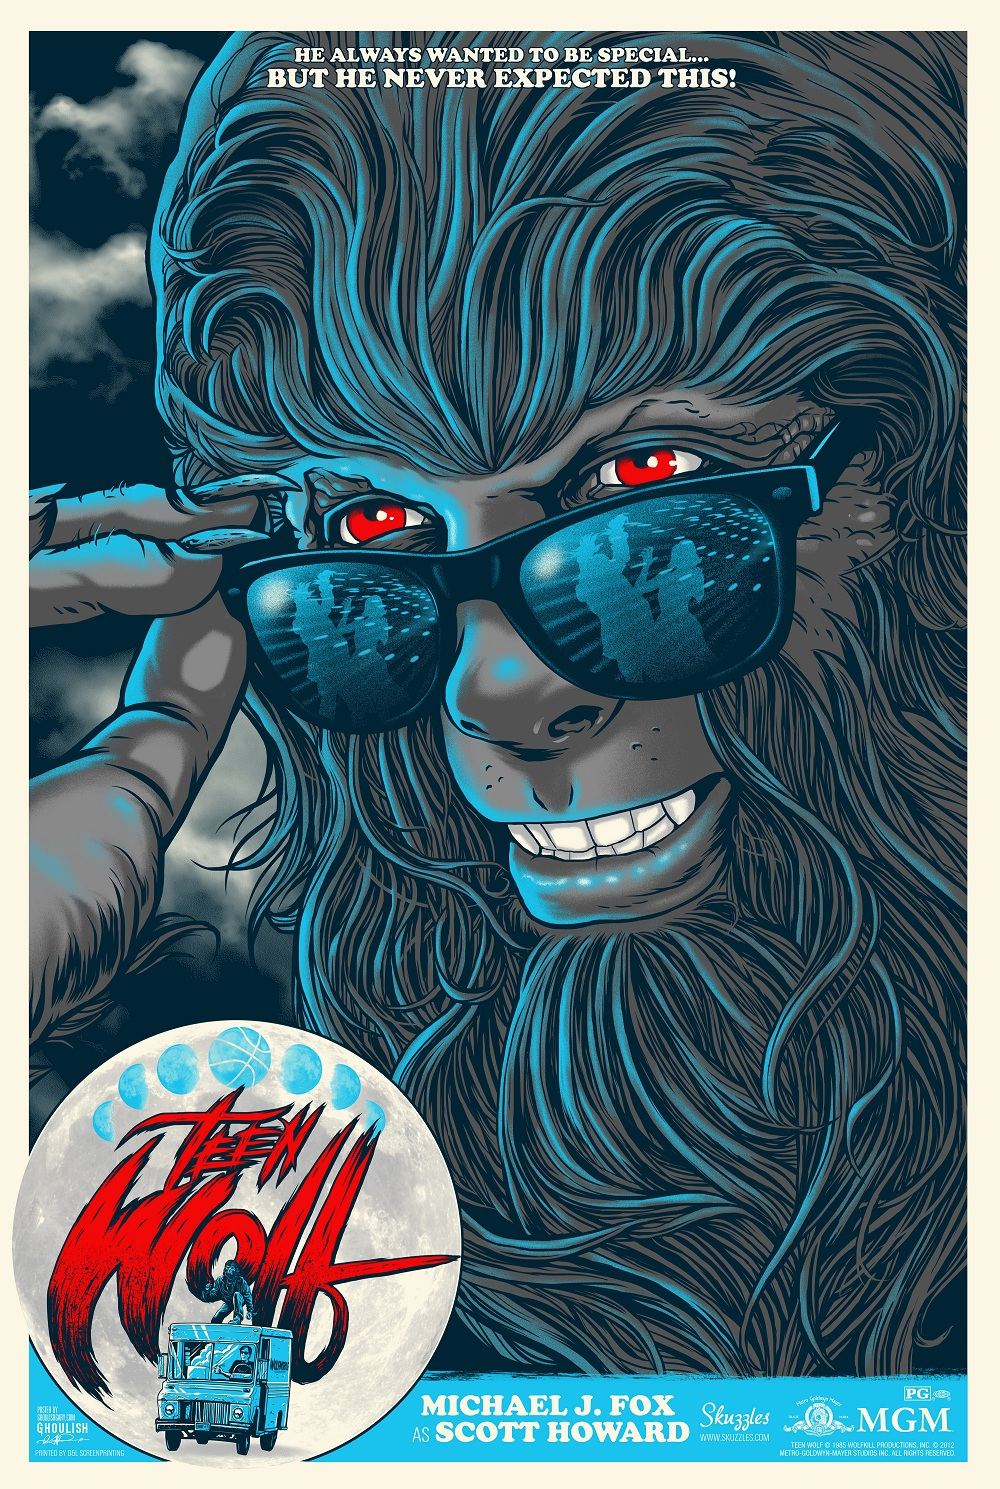 Ghoulish Gary Pullin teen wolf variant